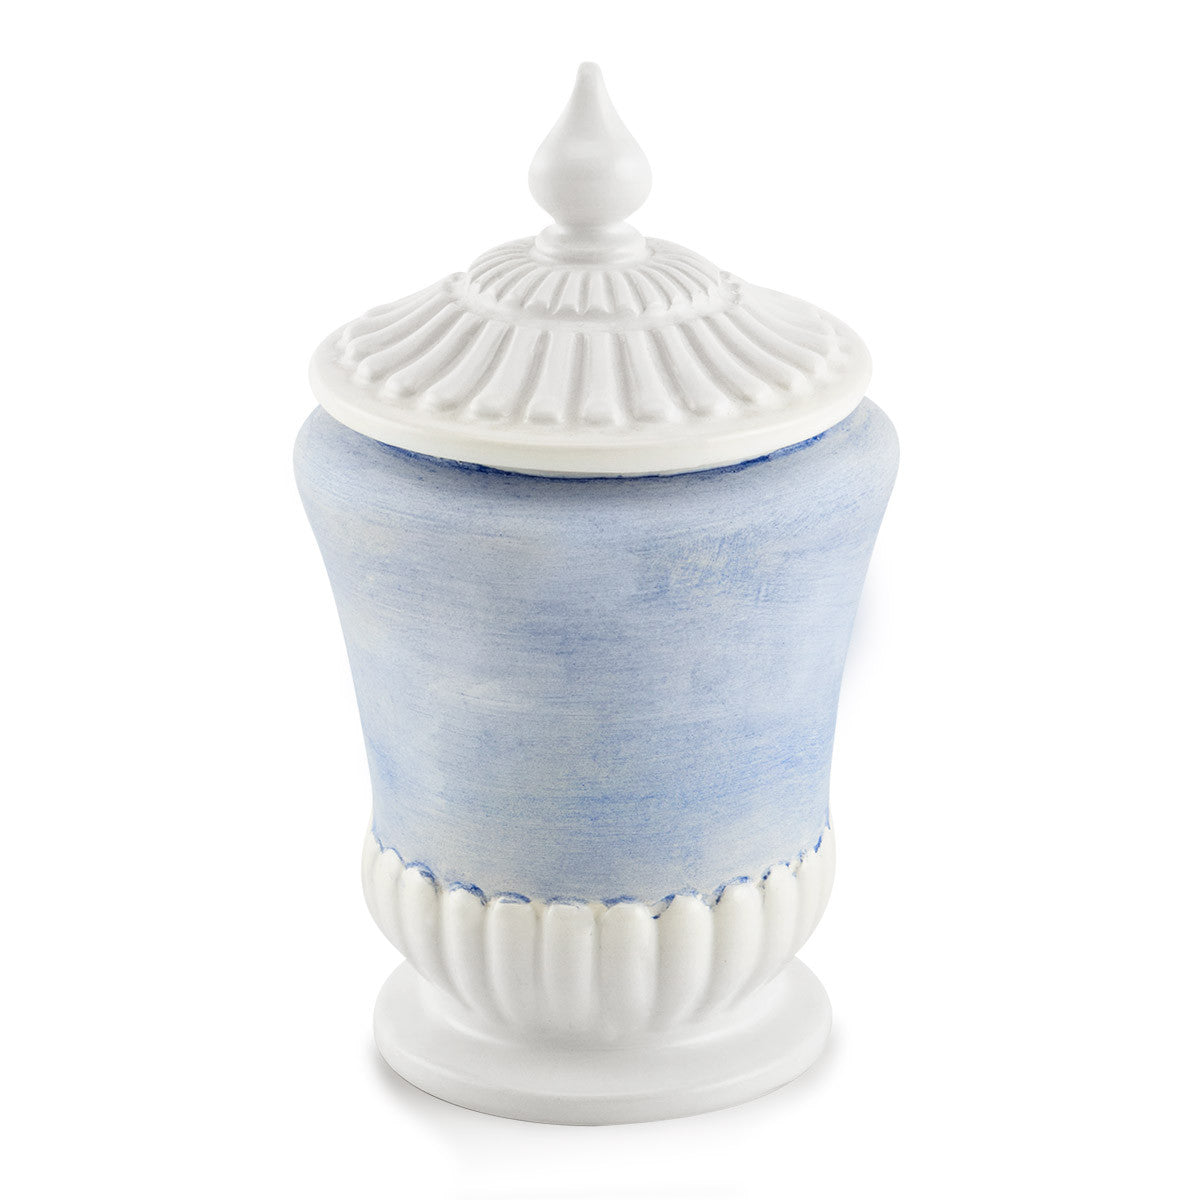 Ceramic jar with lid in light blue